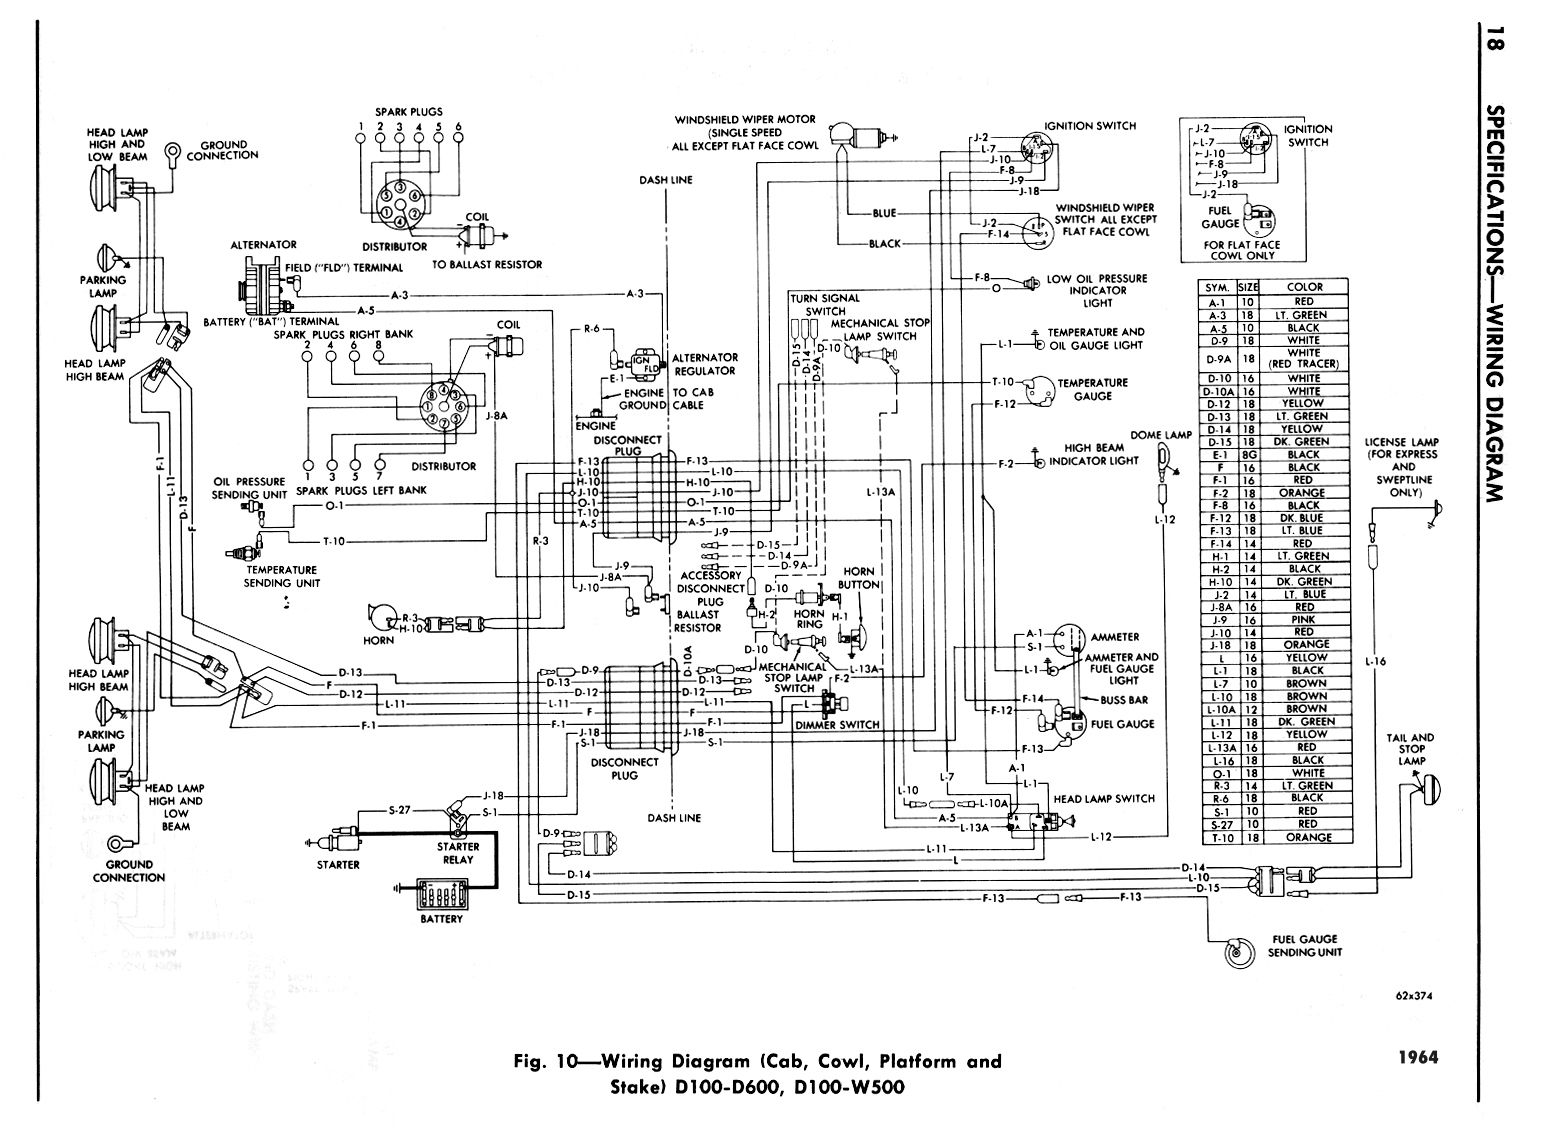 1966 Dodge D100 Wiring Diagram Great Design Of Data In Color Truck